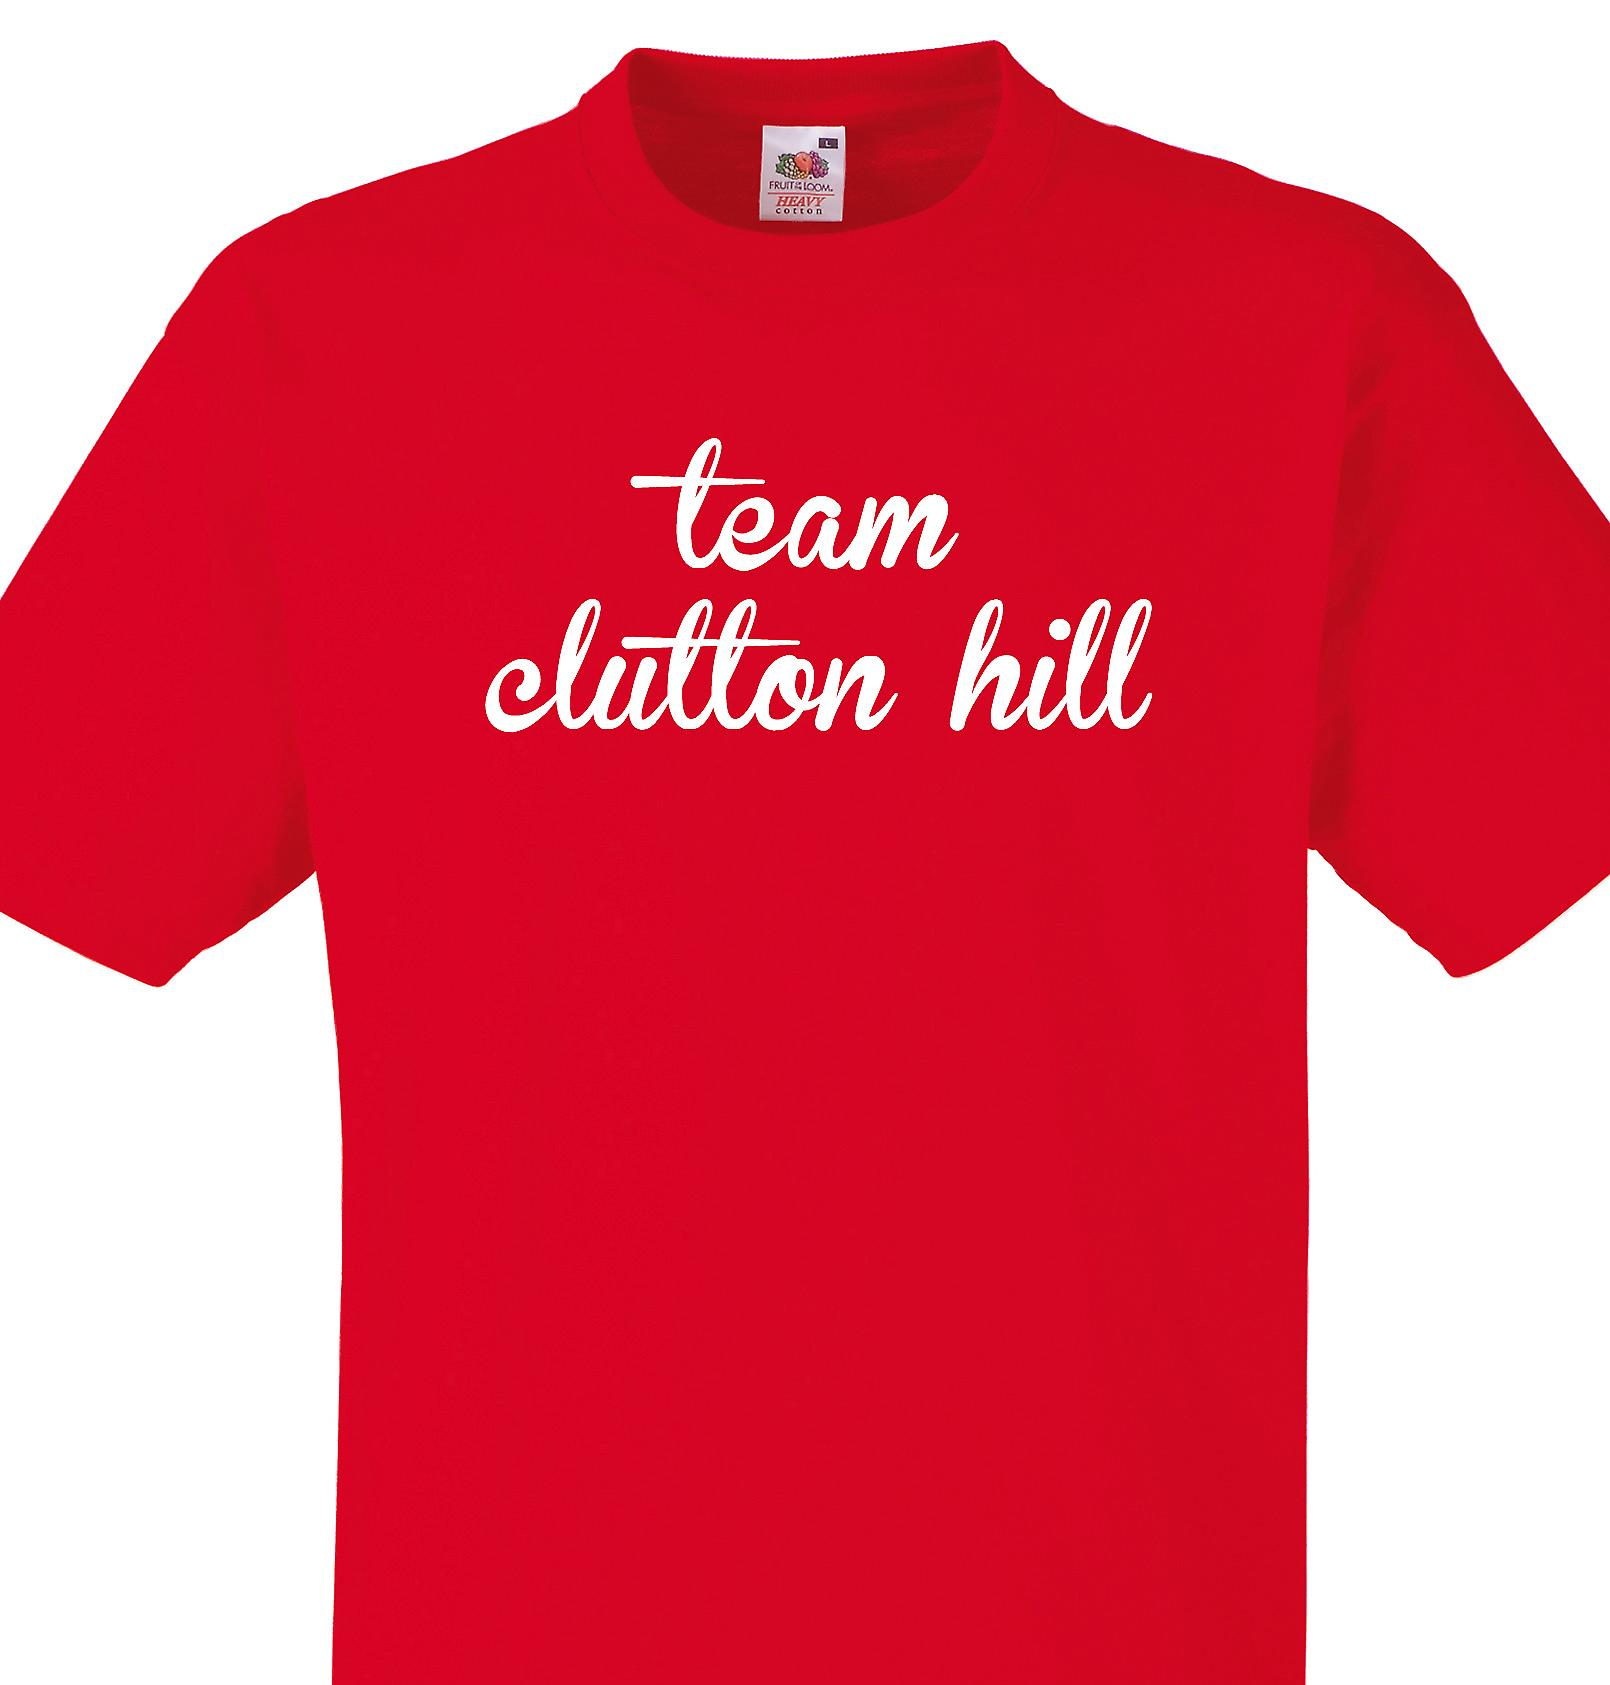 Team Clutton hill Red T shirt